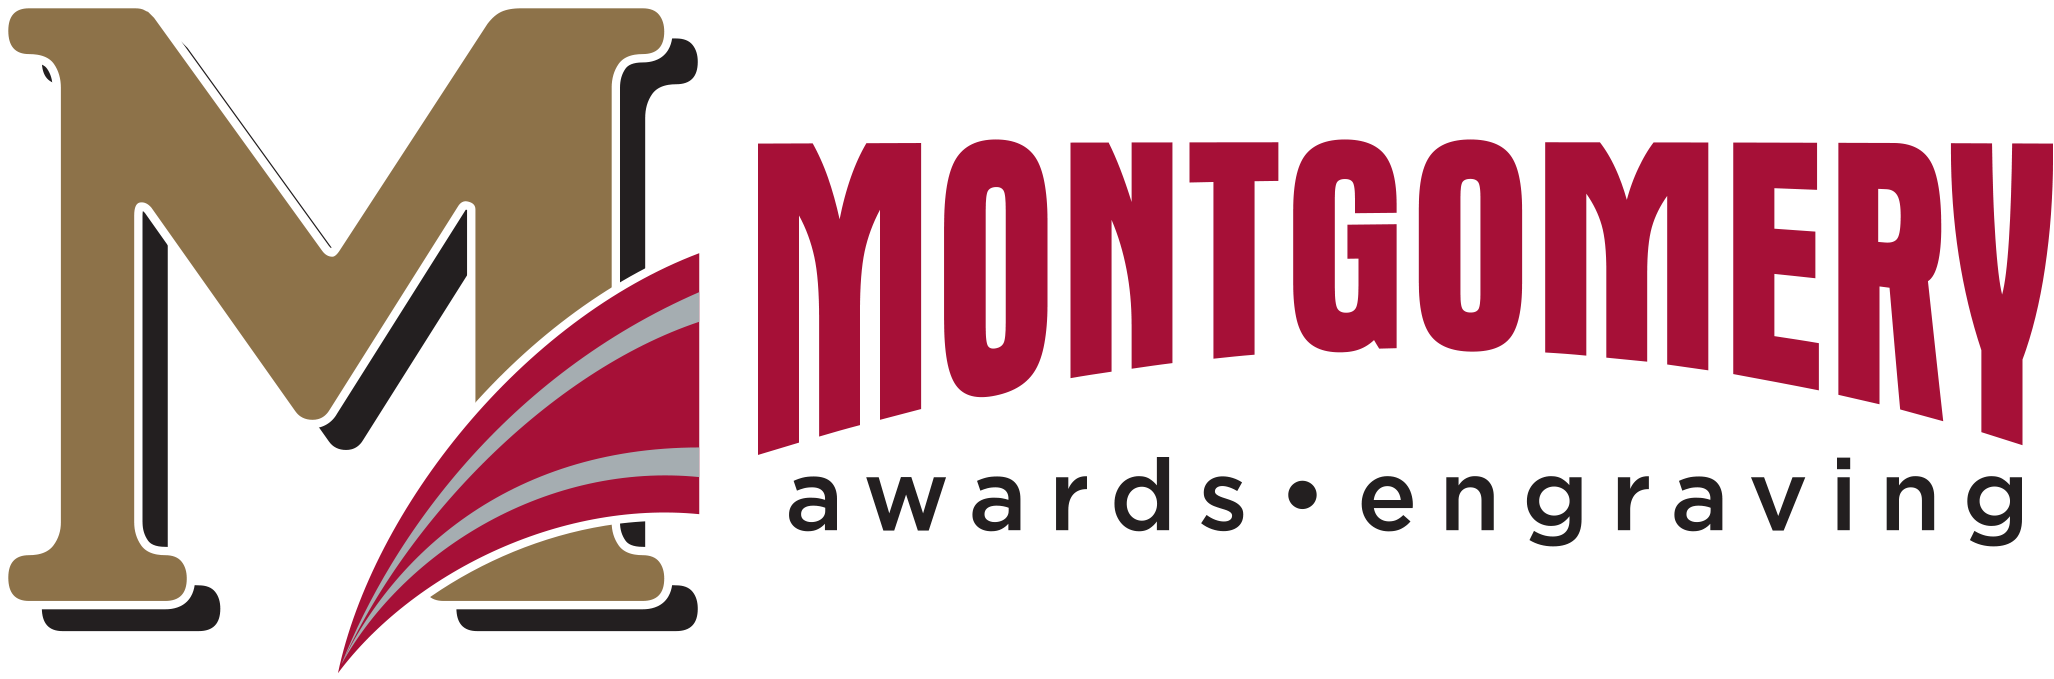 Montgomery Awards